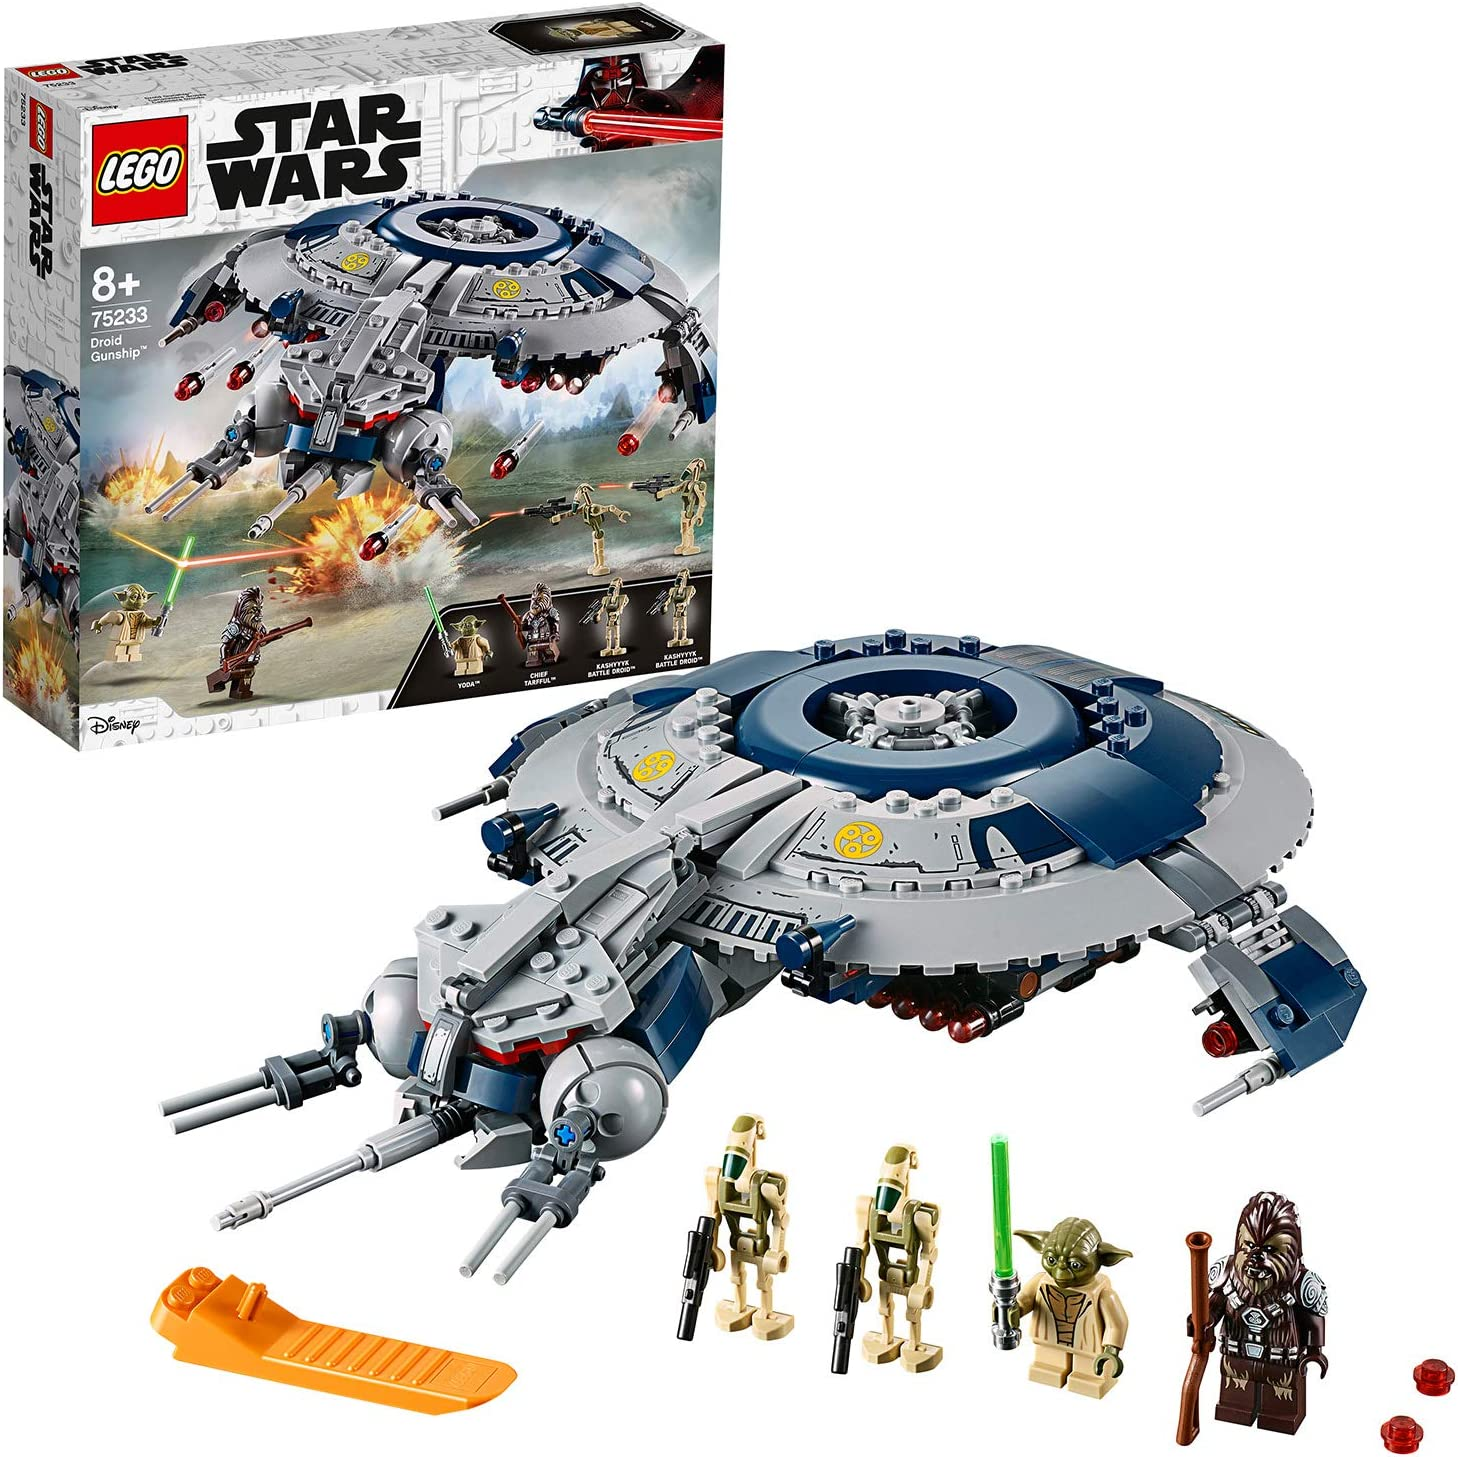 LEGO Star Wars The Revenge of The Sith Droid Gunship Building Kit